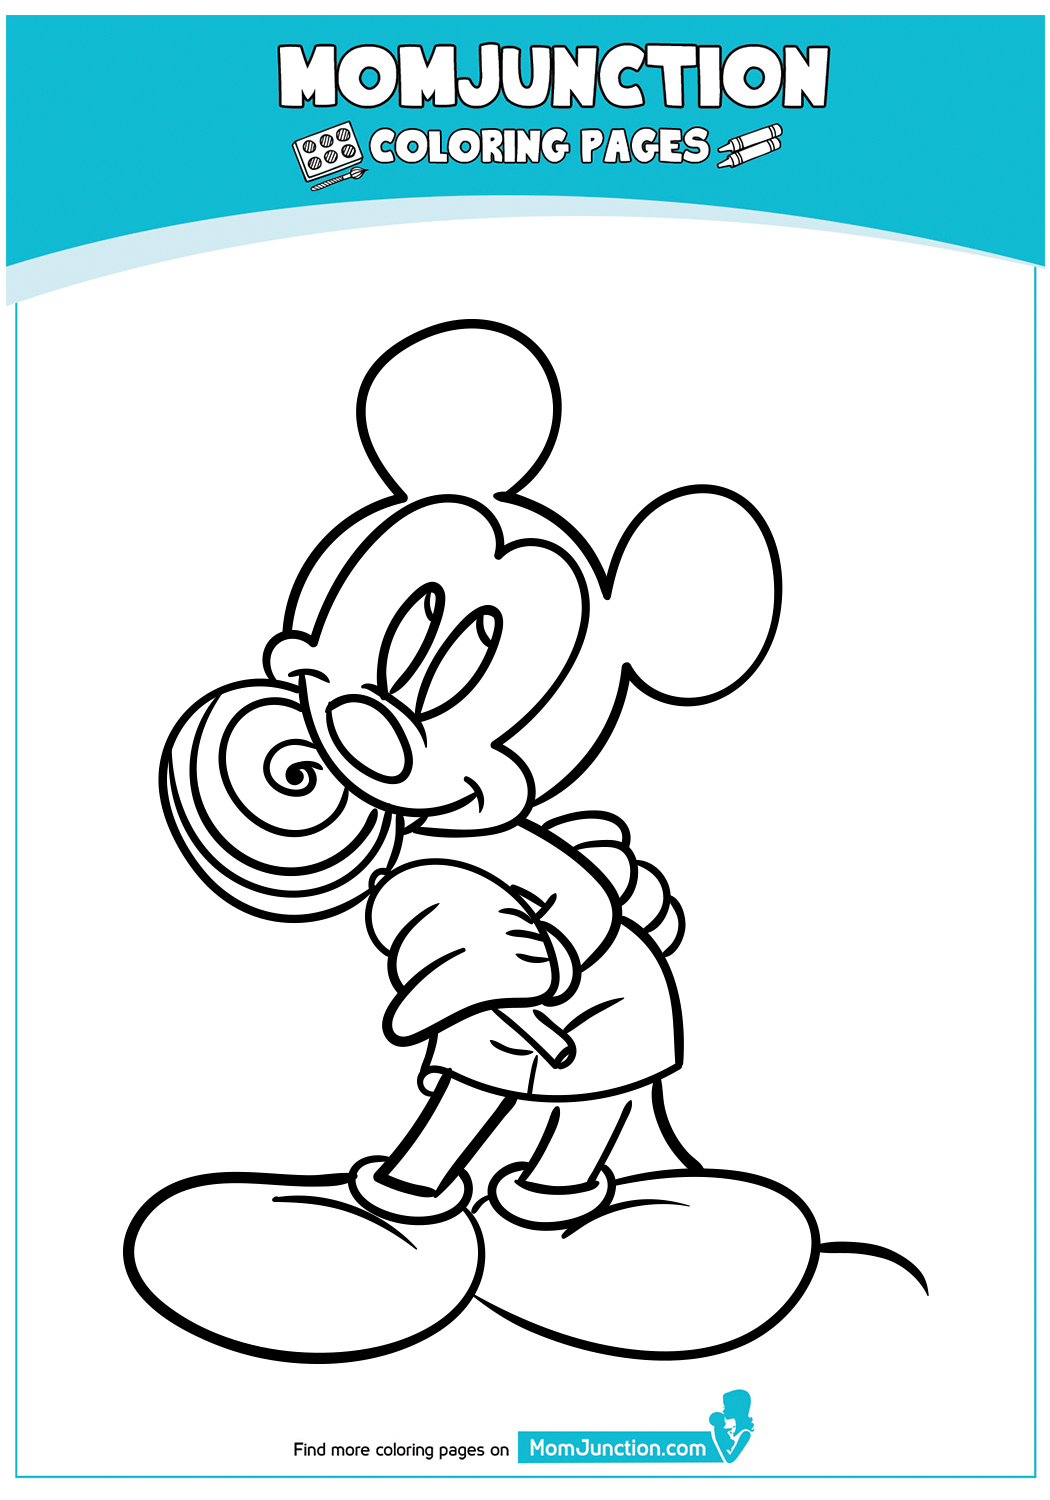 Mickey-Mouse-Eating-Lolipop